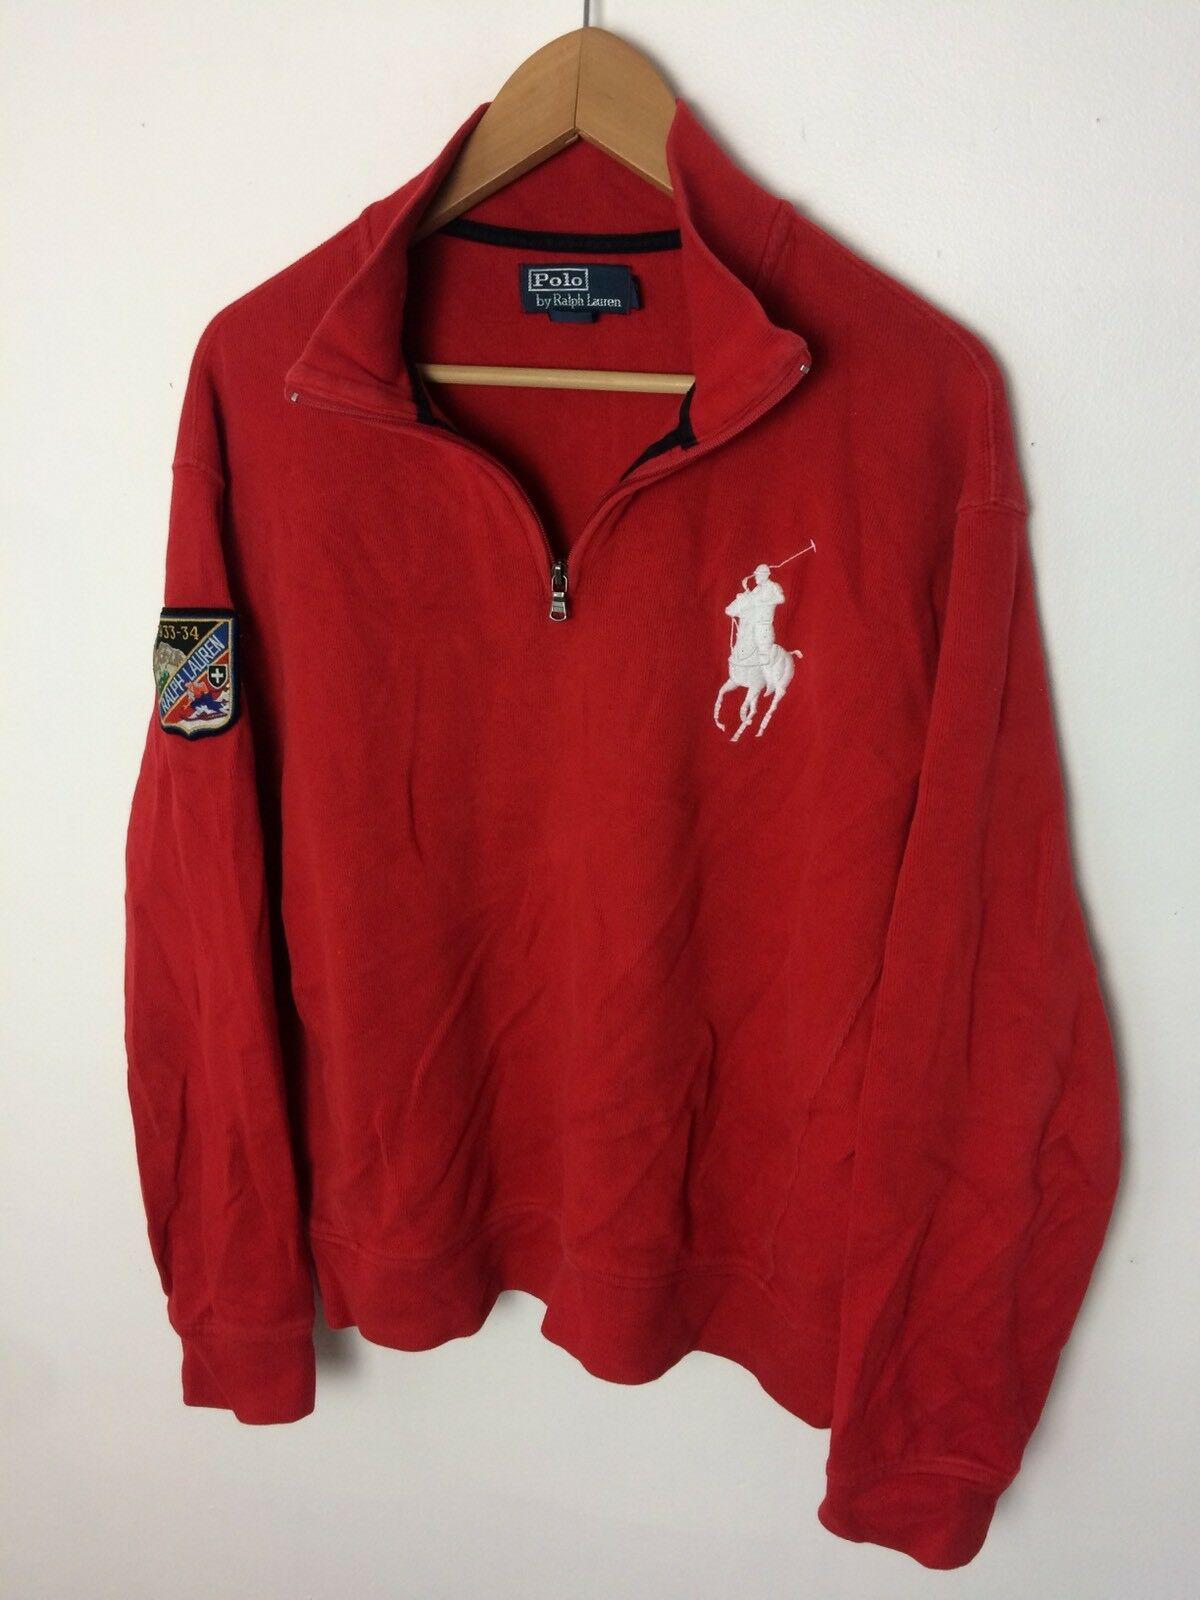 Polo Ralph Lauren 1/4 Zip ROT Big Pony Ski Patch Pull Over Sweater Größe Large